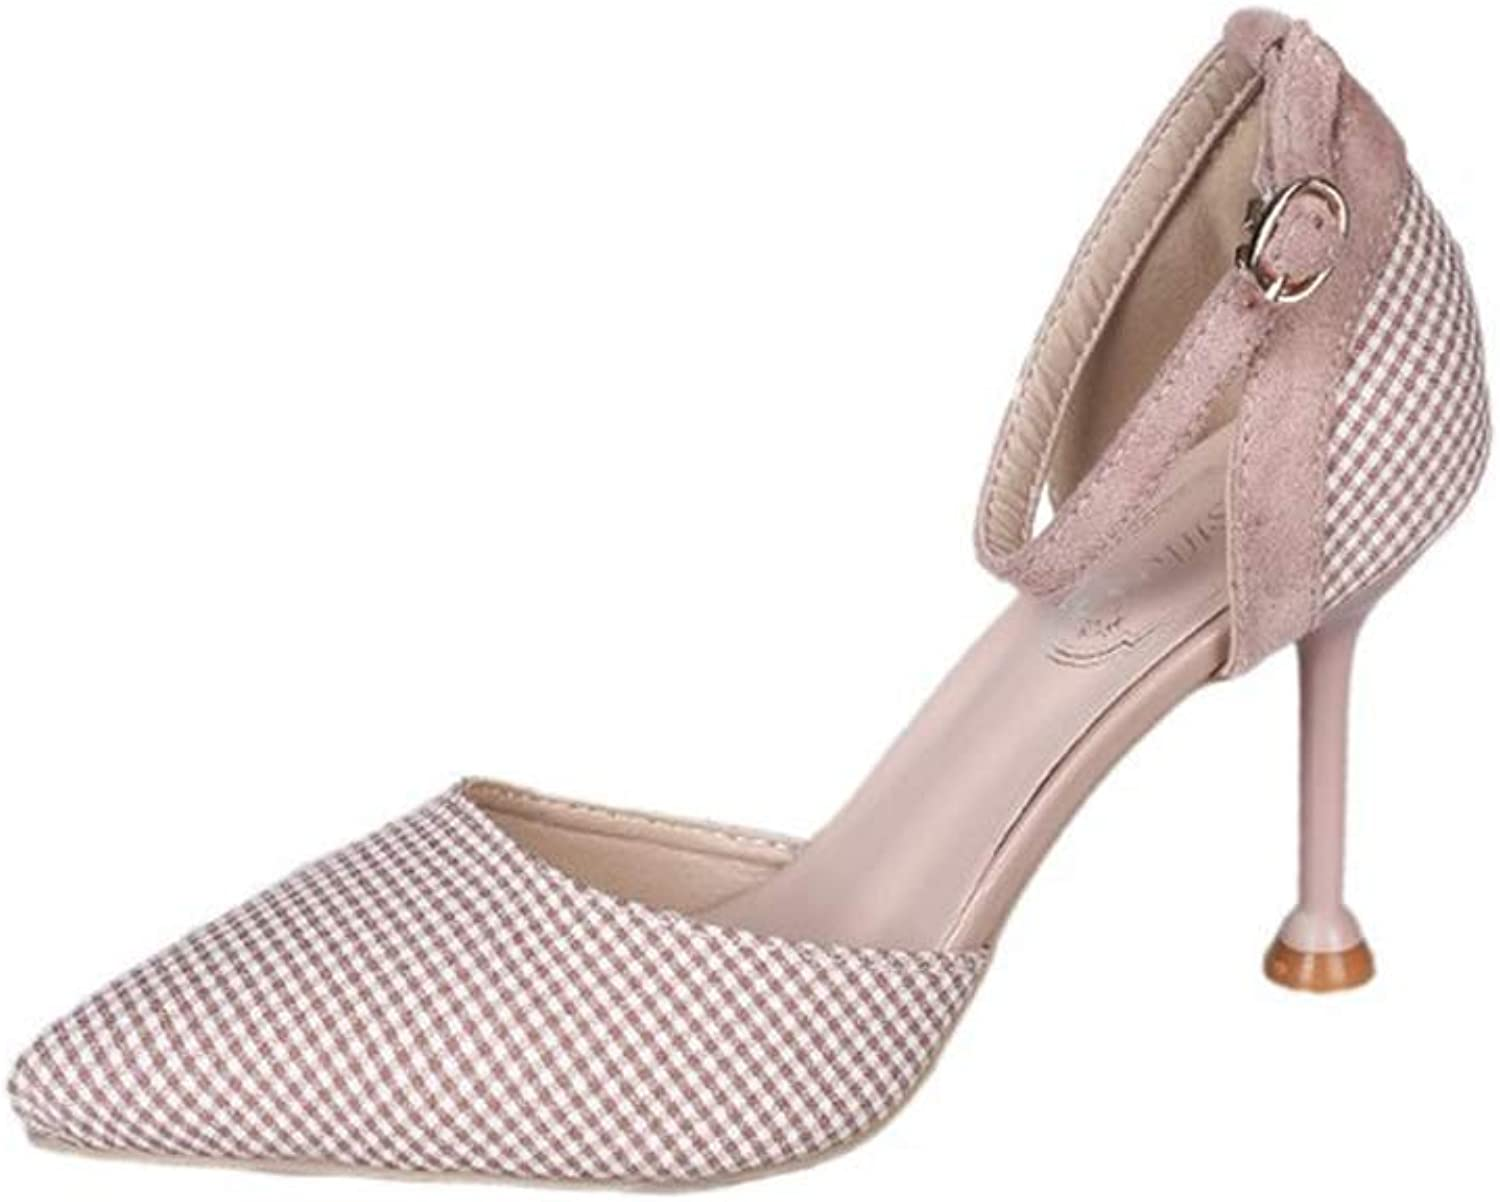 FLourishing Women's Simple Closed Toe Mid Heel shoes with Lattices Professional Buckle Sandals